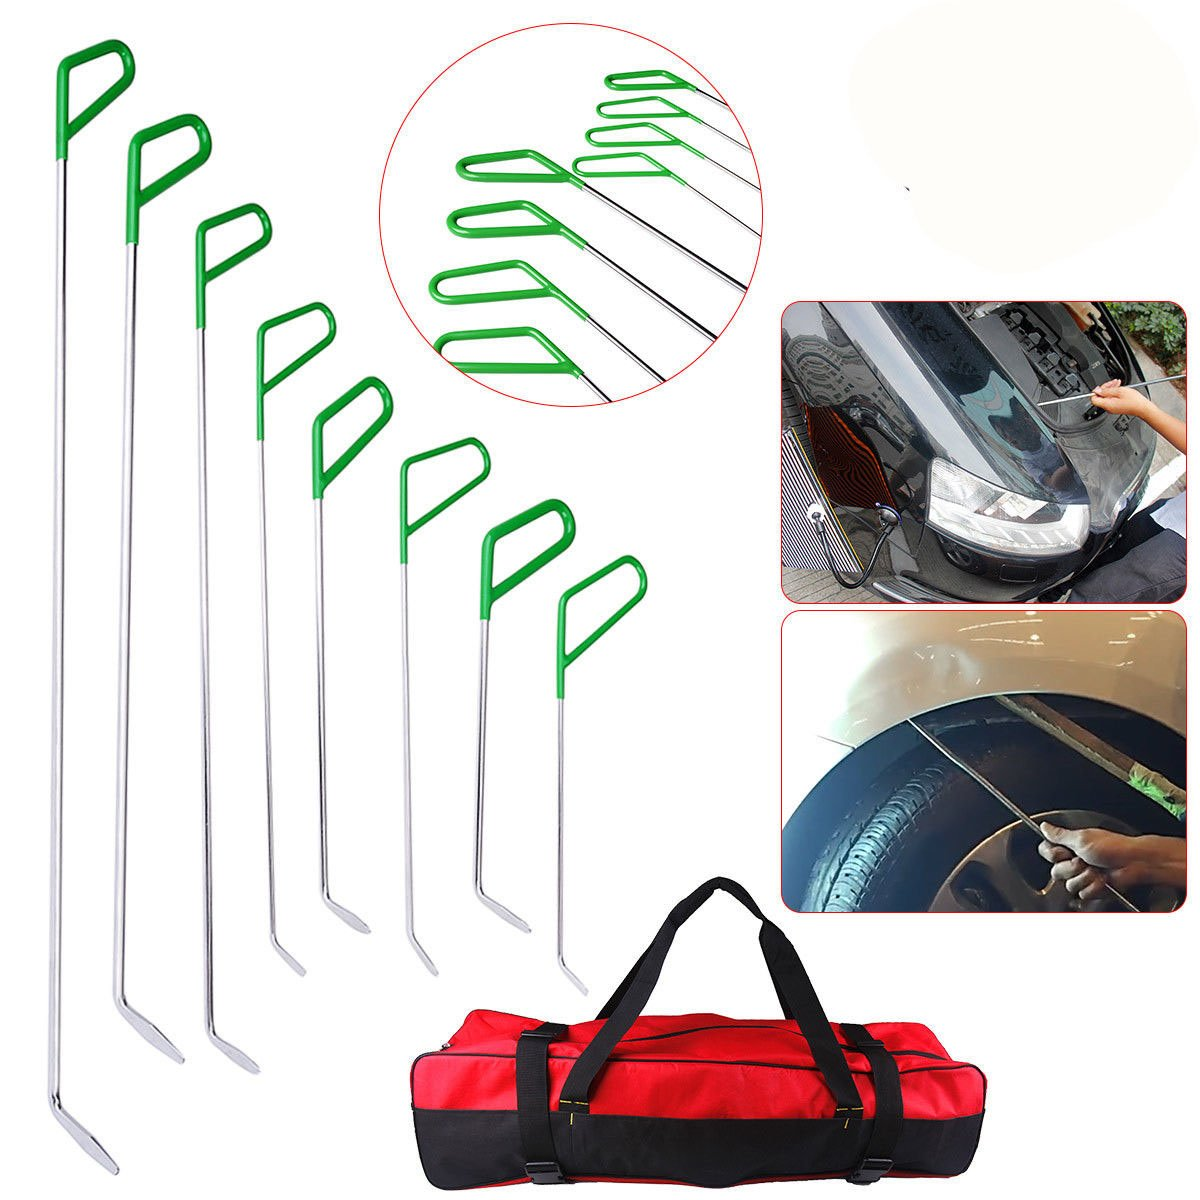 AUTOPDR Special PDR Car Body Dent Repair Removal Tools Automotive Body Dent Remover Tools Kits Set Green Stainless Steel PDR Rod Sets Hail Slide Hammer Tool Kit Set Dent Puller with Tool Bag